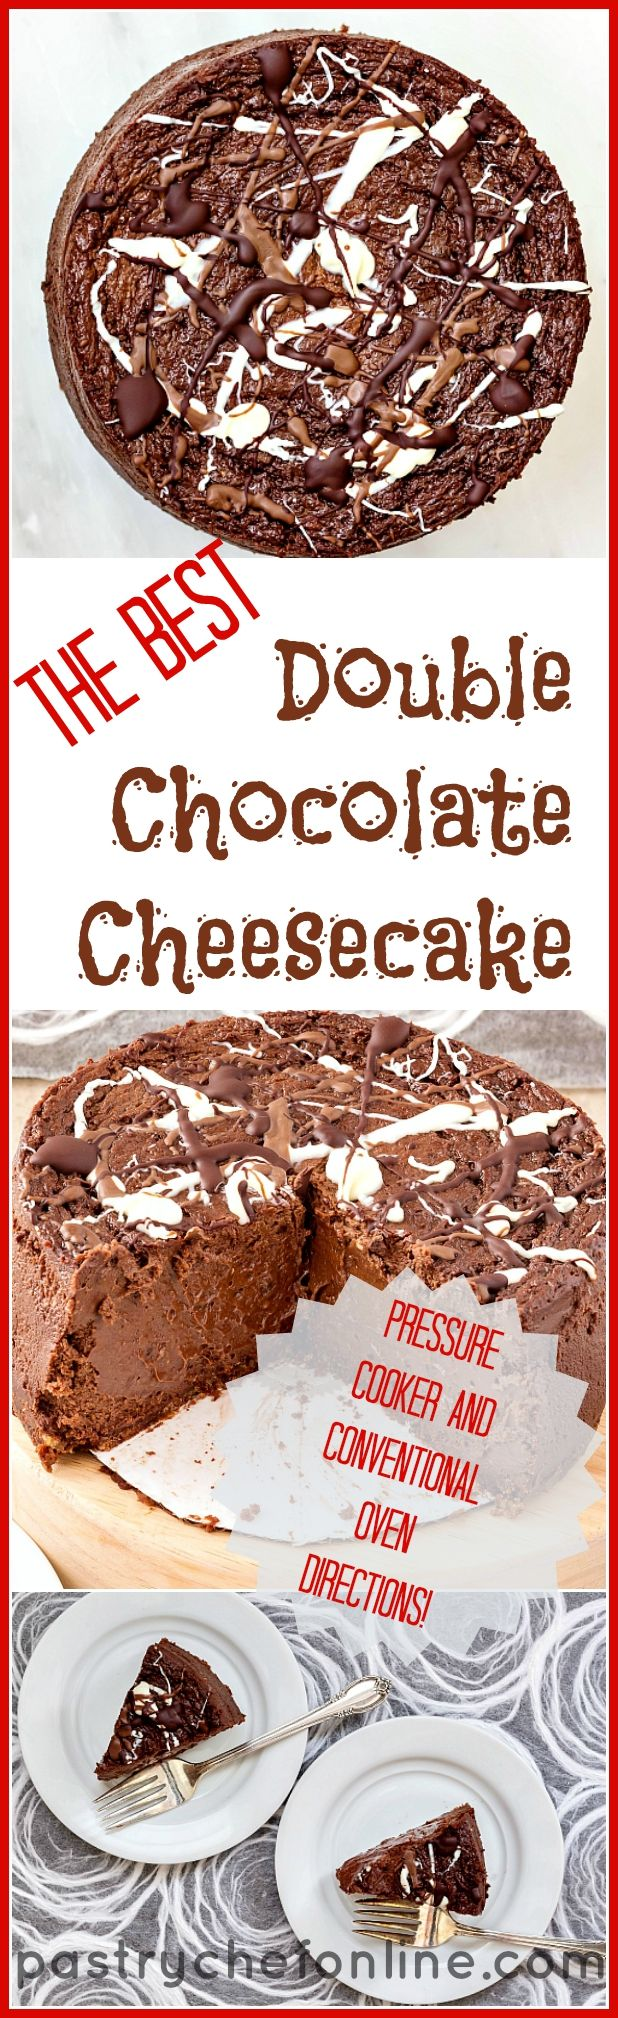 "This might just be the only chocolate cheesecake recipe you need. It is certainly decadent, smooth, creamy and delicious. Make a 6"" cake to serve 6-8 or double the recipe to make a 9"" cake to serve 16. Either way, this cake is a stunner. Included are directions for cooking in a pressure cooker as well as baking in the oven. Try it, and see if you don't think this is the best double chocolate cheesecake recipe around! 